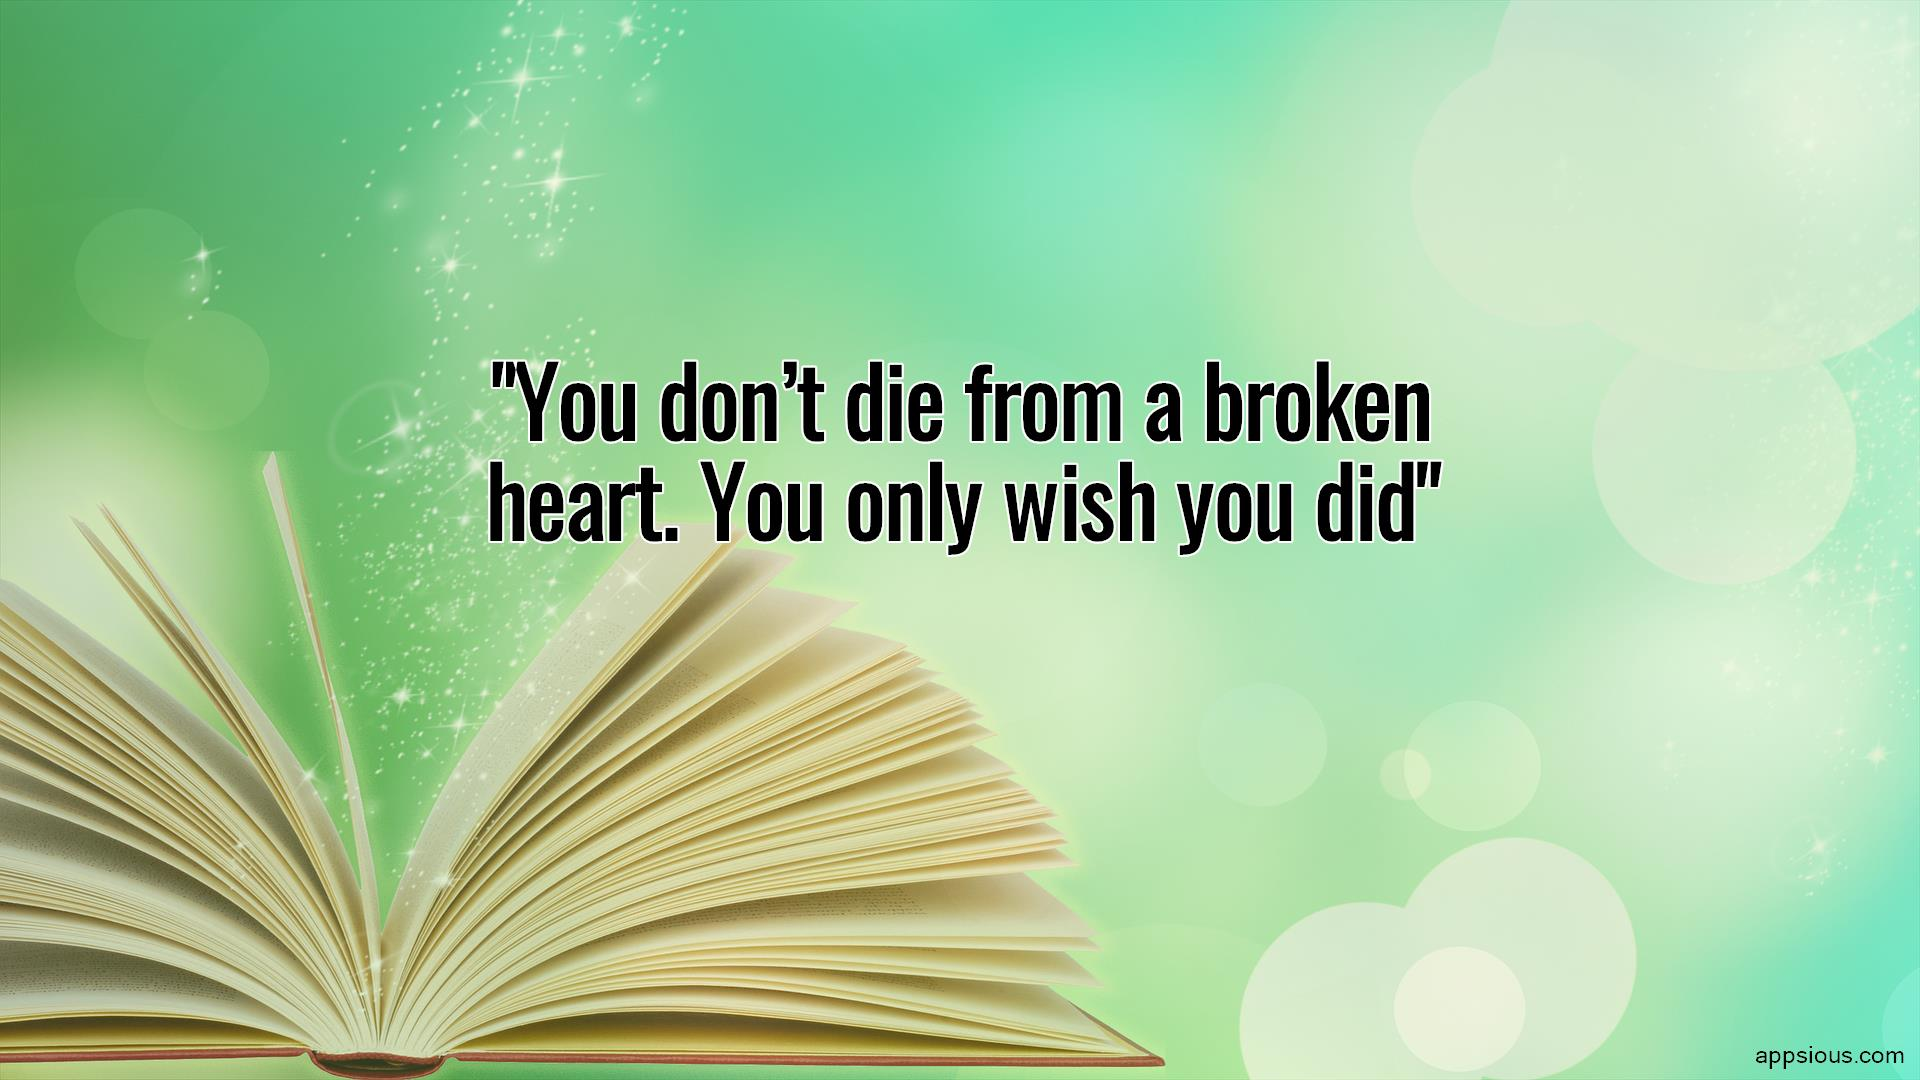 You don't die from a broken heart. You only wish you did